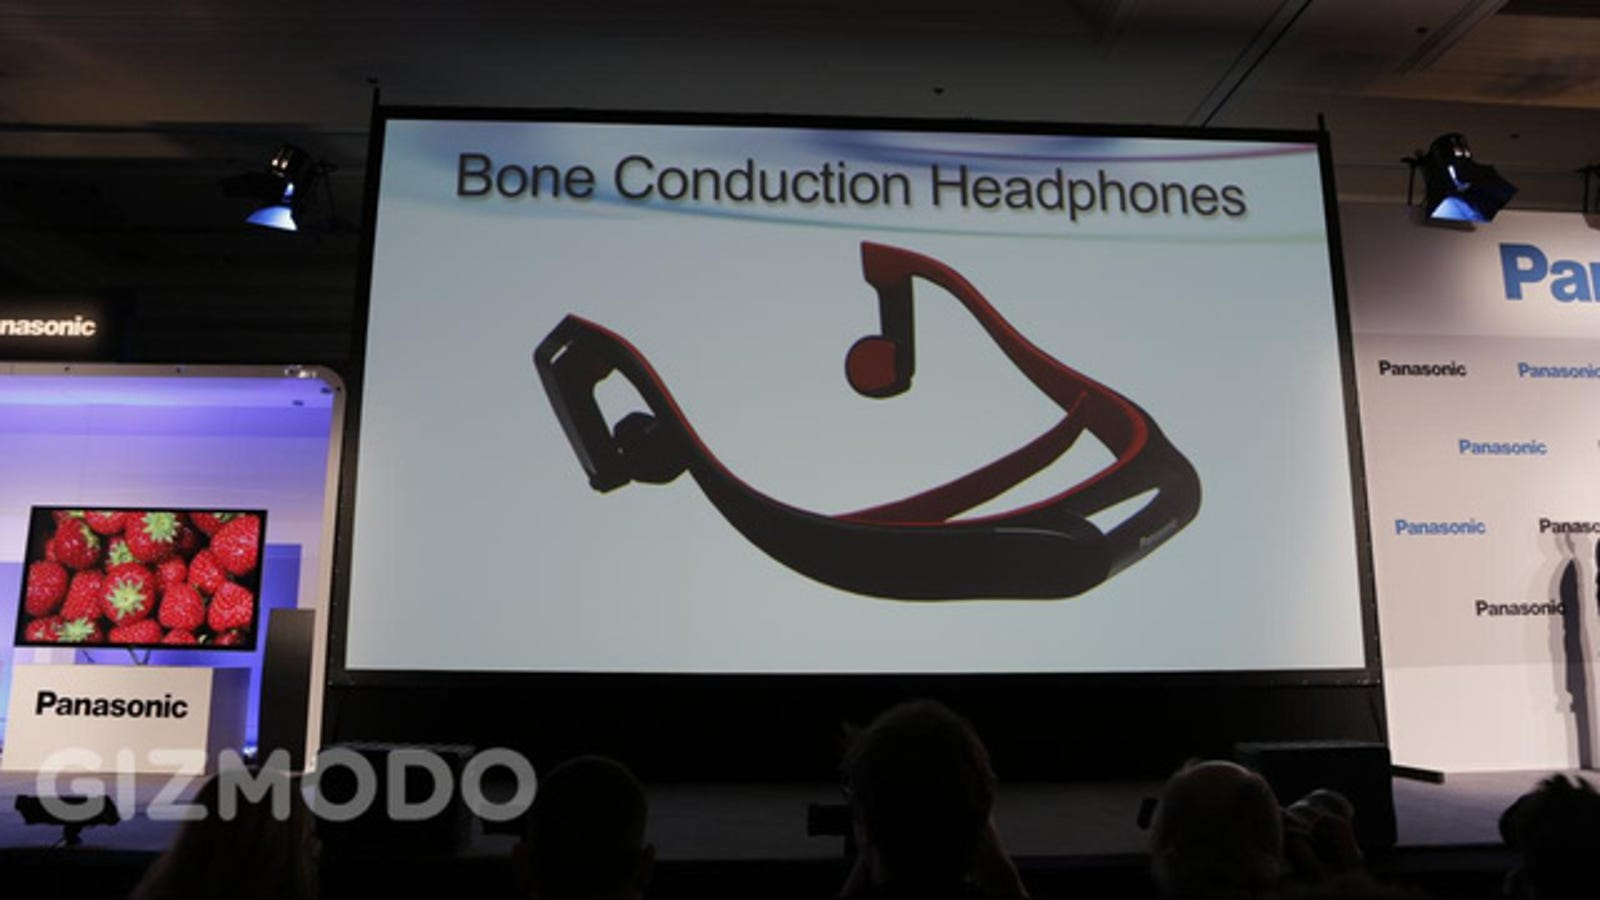 iphone 7 earbuds appl - Panasonic's New Bone Conducting Headphones: WTH?